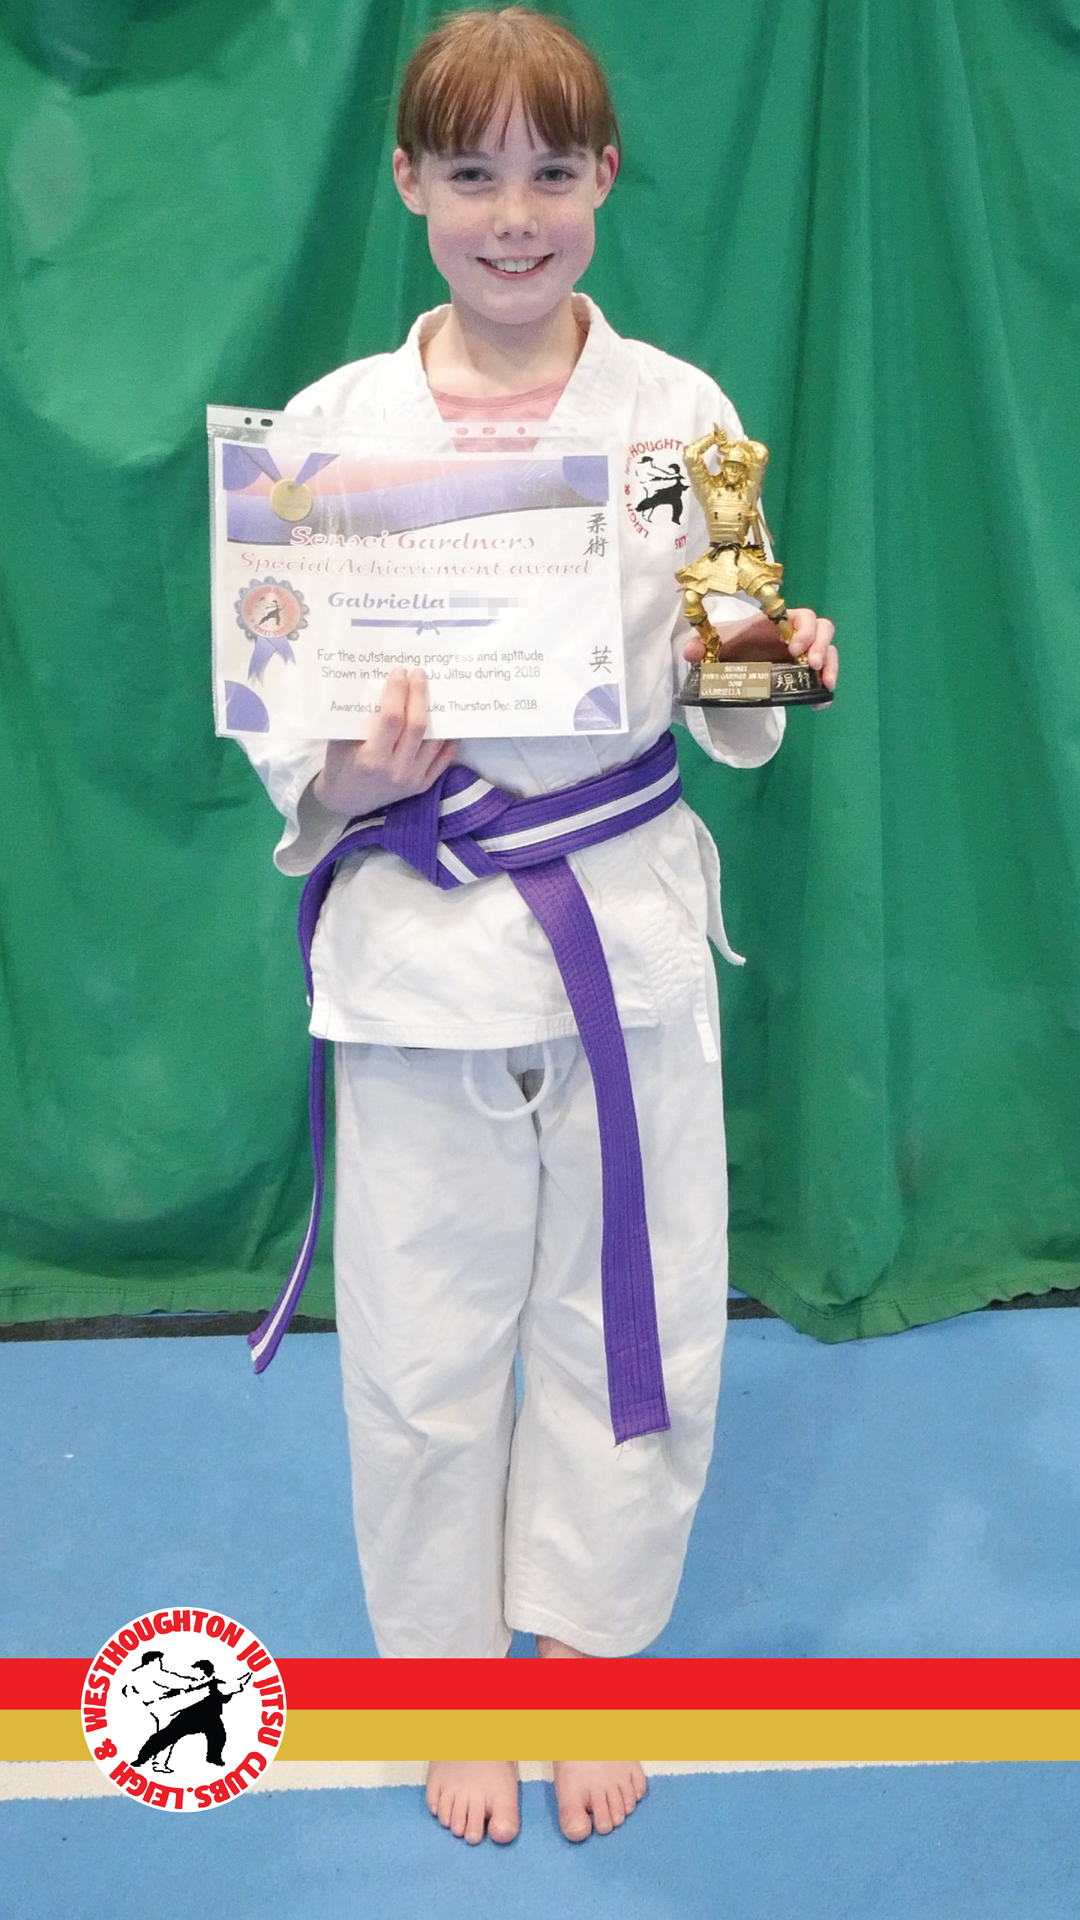 Sensei Gardner Award - Congratulations to Gabriella for achieving the Sensei Gardner award for her hard work and embodiment of Ju Jitsu and its values.